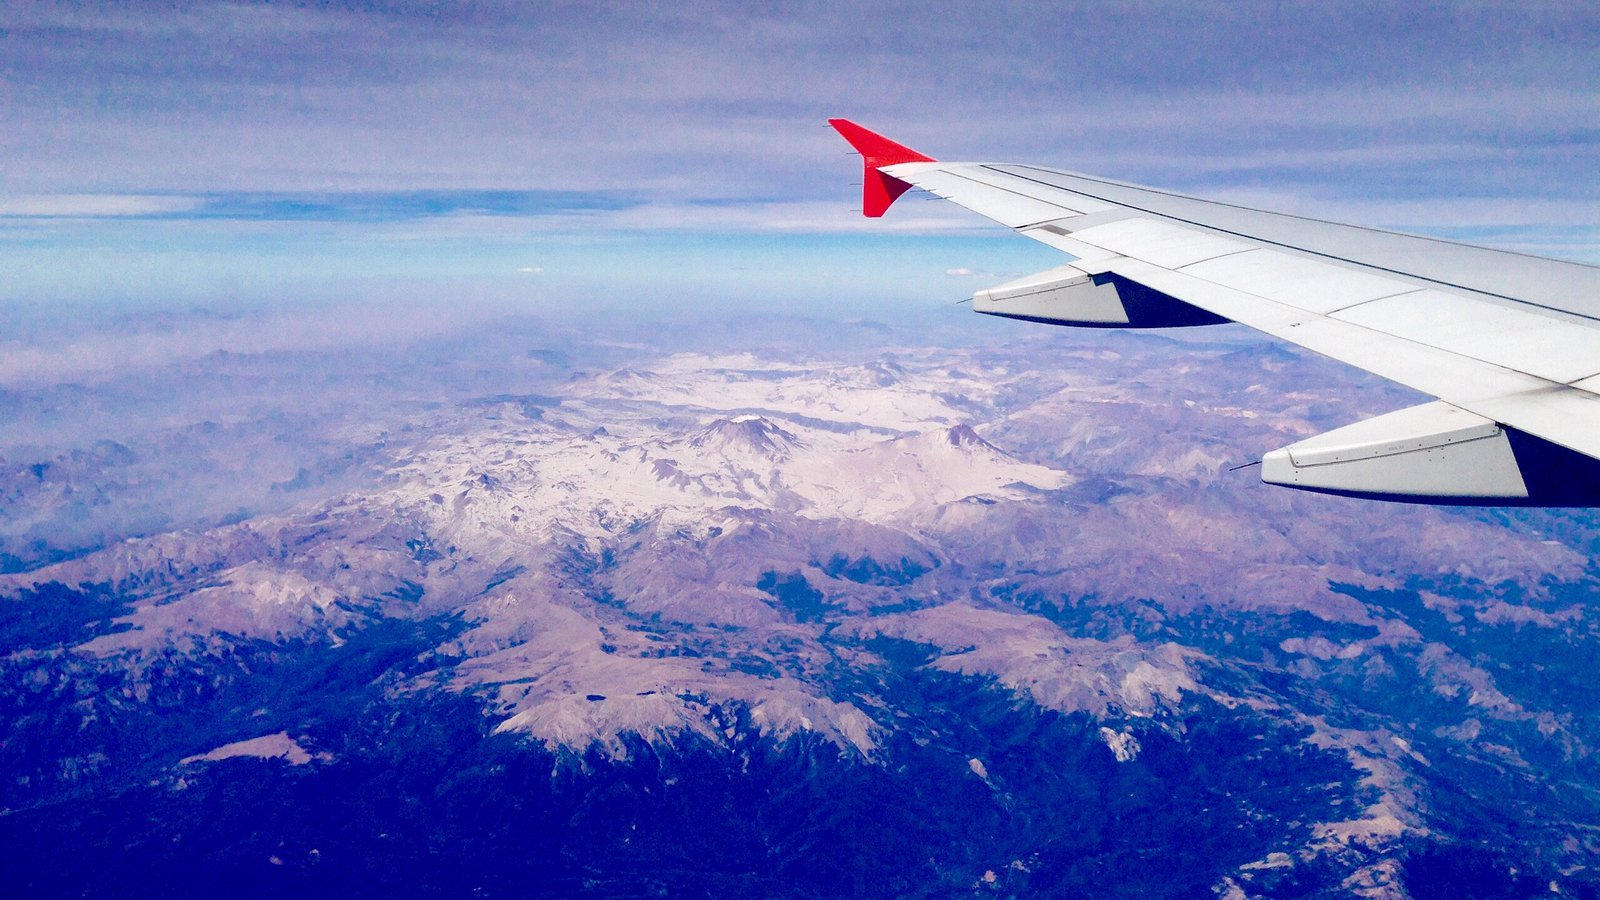 Bird's-eye view of the South American Andes Mountains.